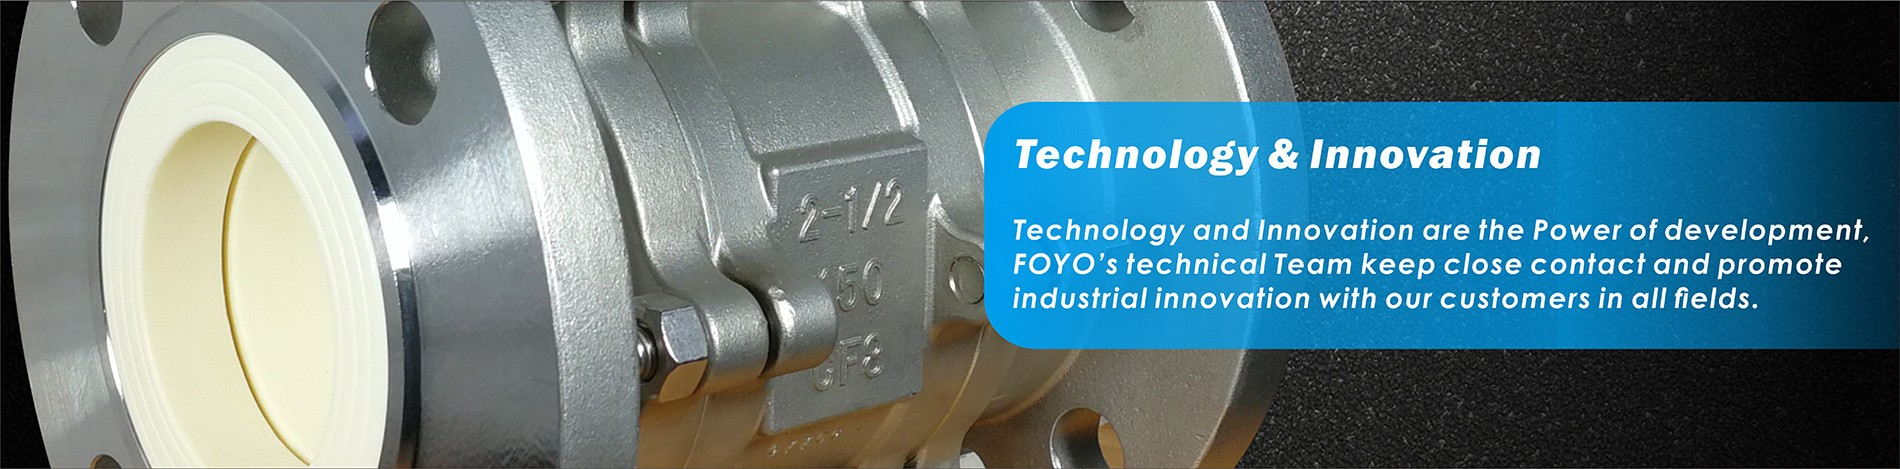 Technology and Innovation of FOYO Ceramic Ball Valves